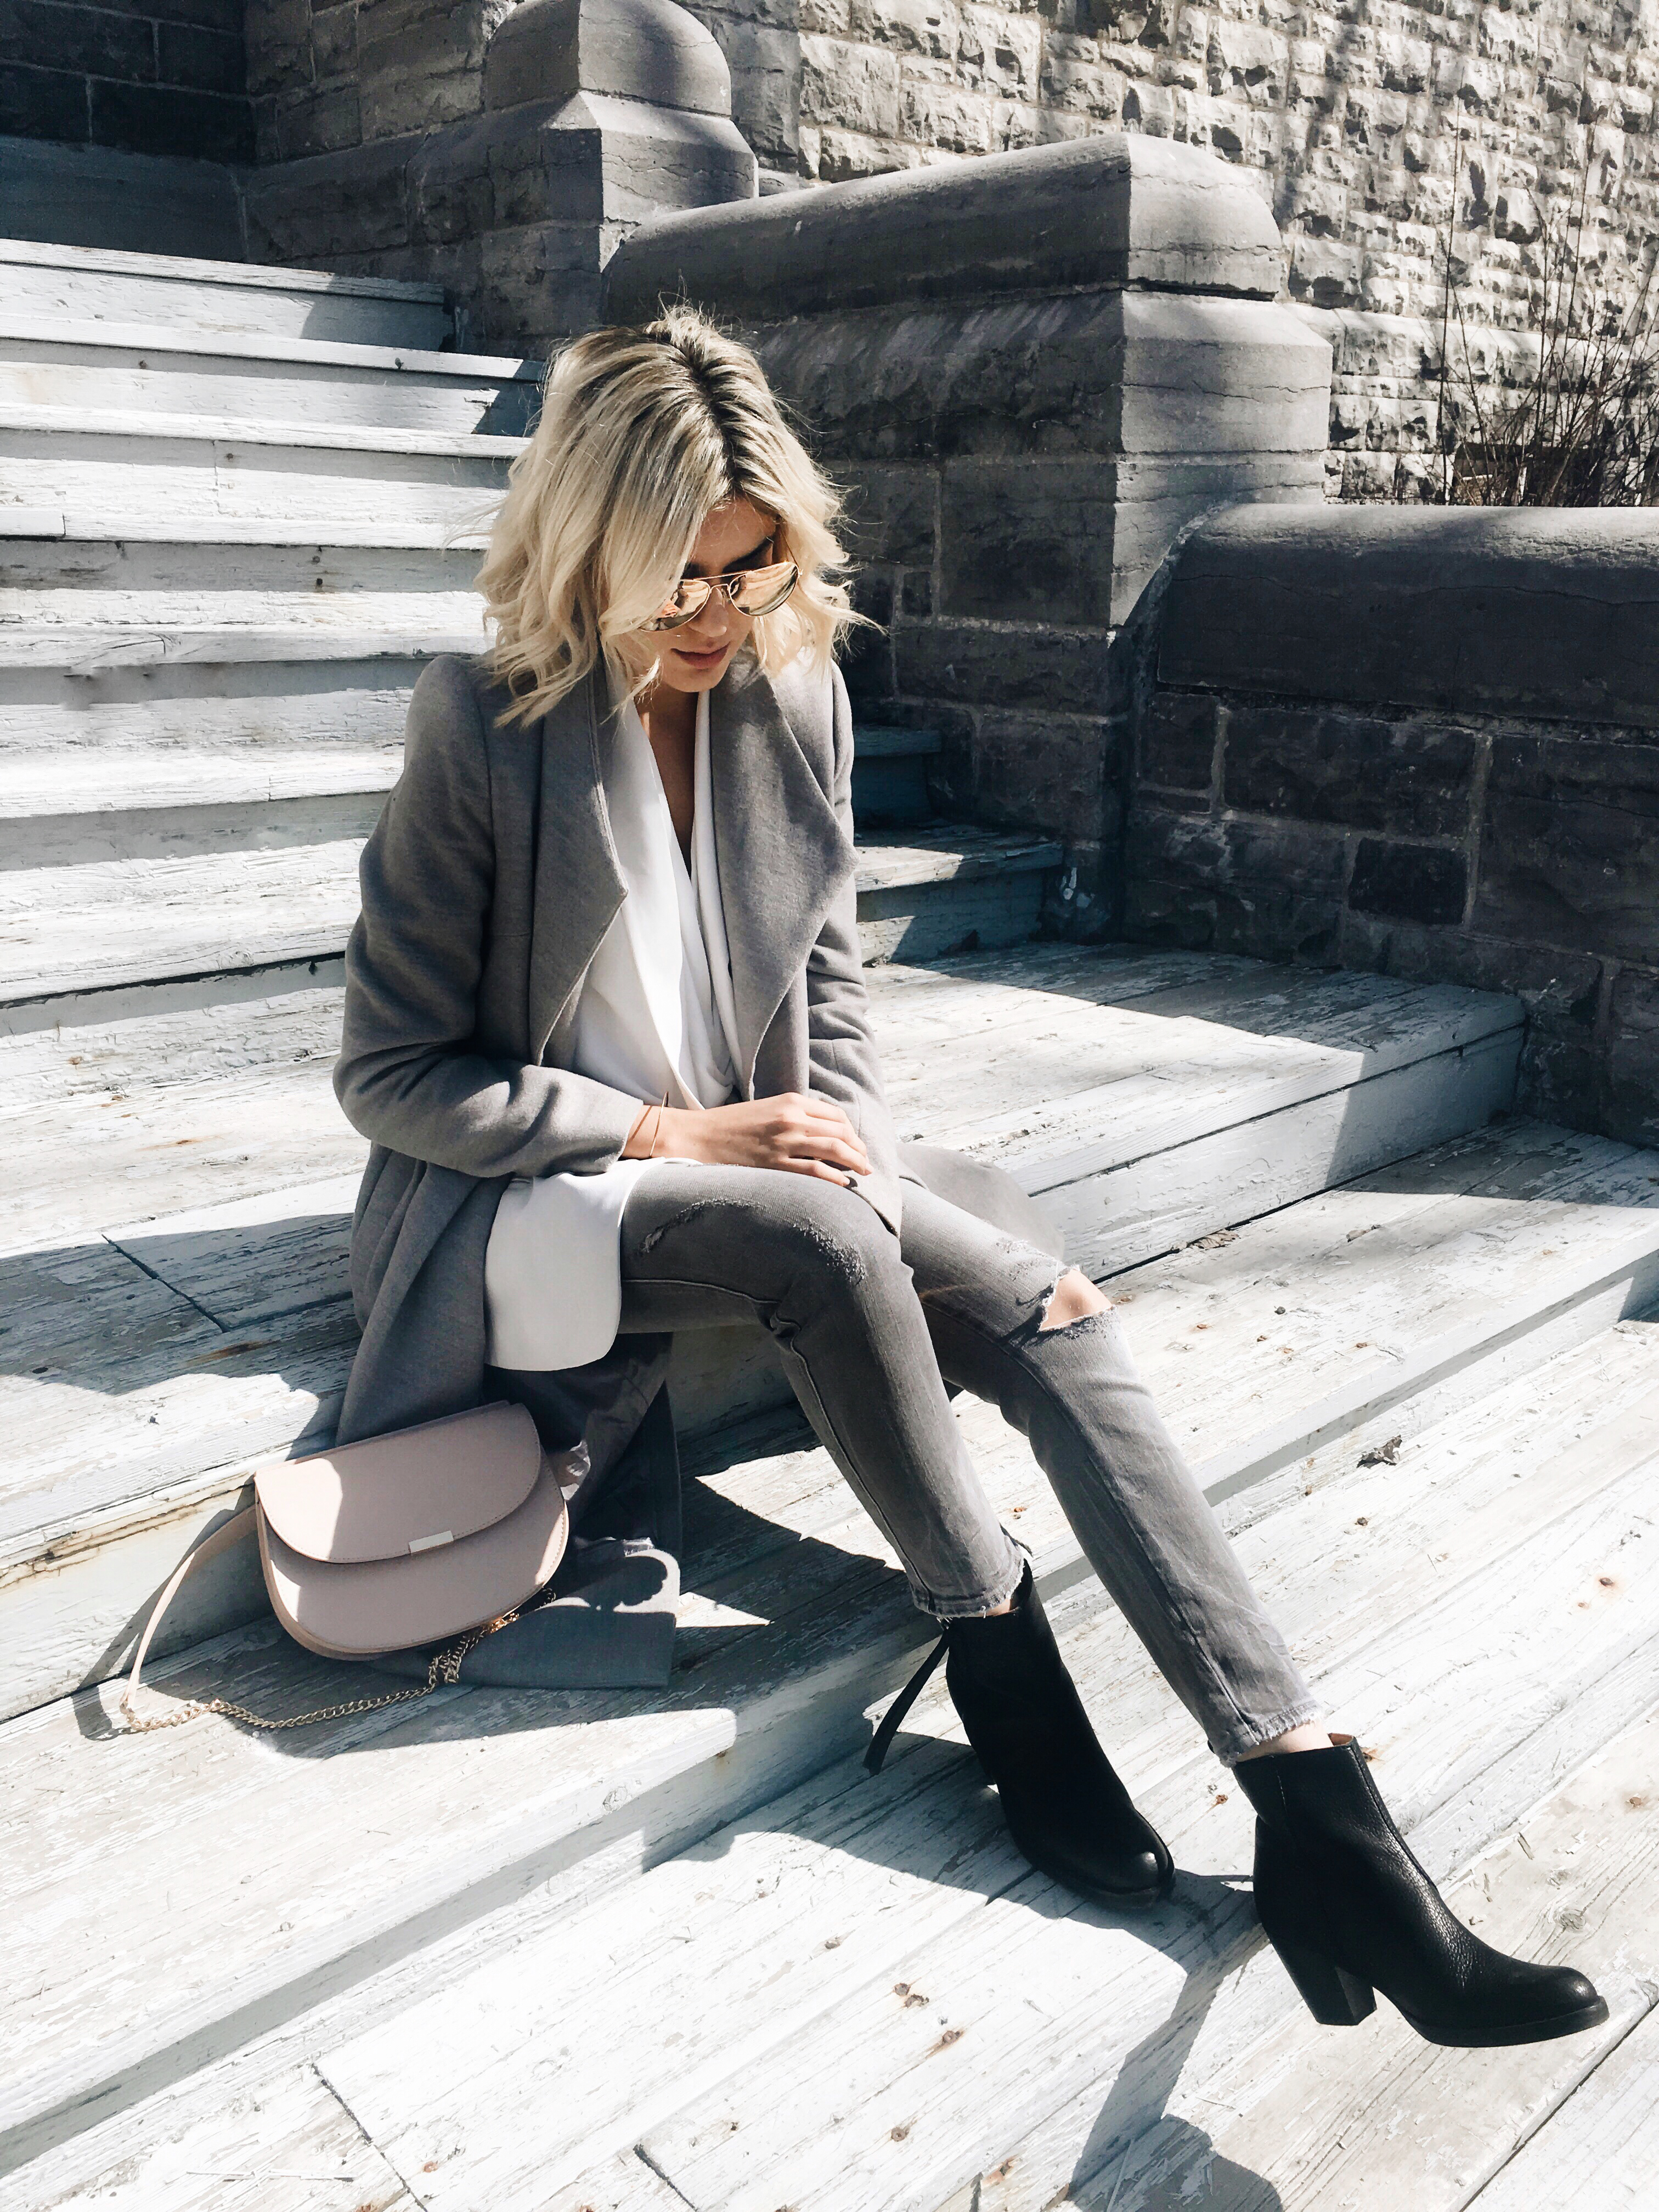 Emily Luciano is keeping it cool and casual in an all grey outfit consisting of a grey maxi coat, a white blazer, and a pair of gorgeous patent Chelsea boots from Acne. Grey tones are 100% in this season, and will give you a refreshing spring style which you won't be able to resist! Boots: Acne.